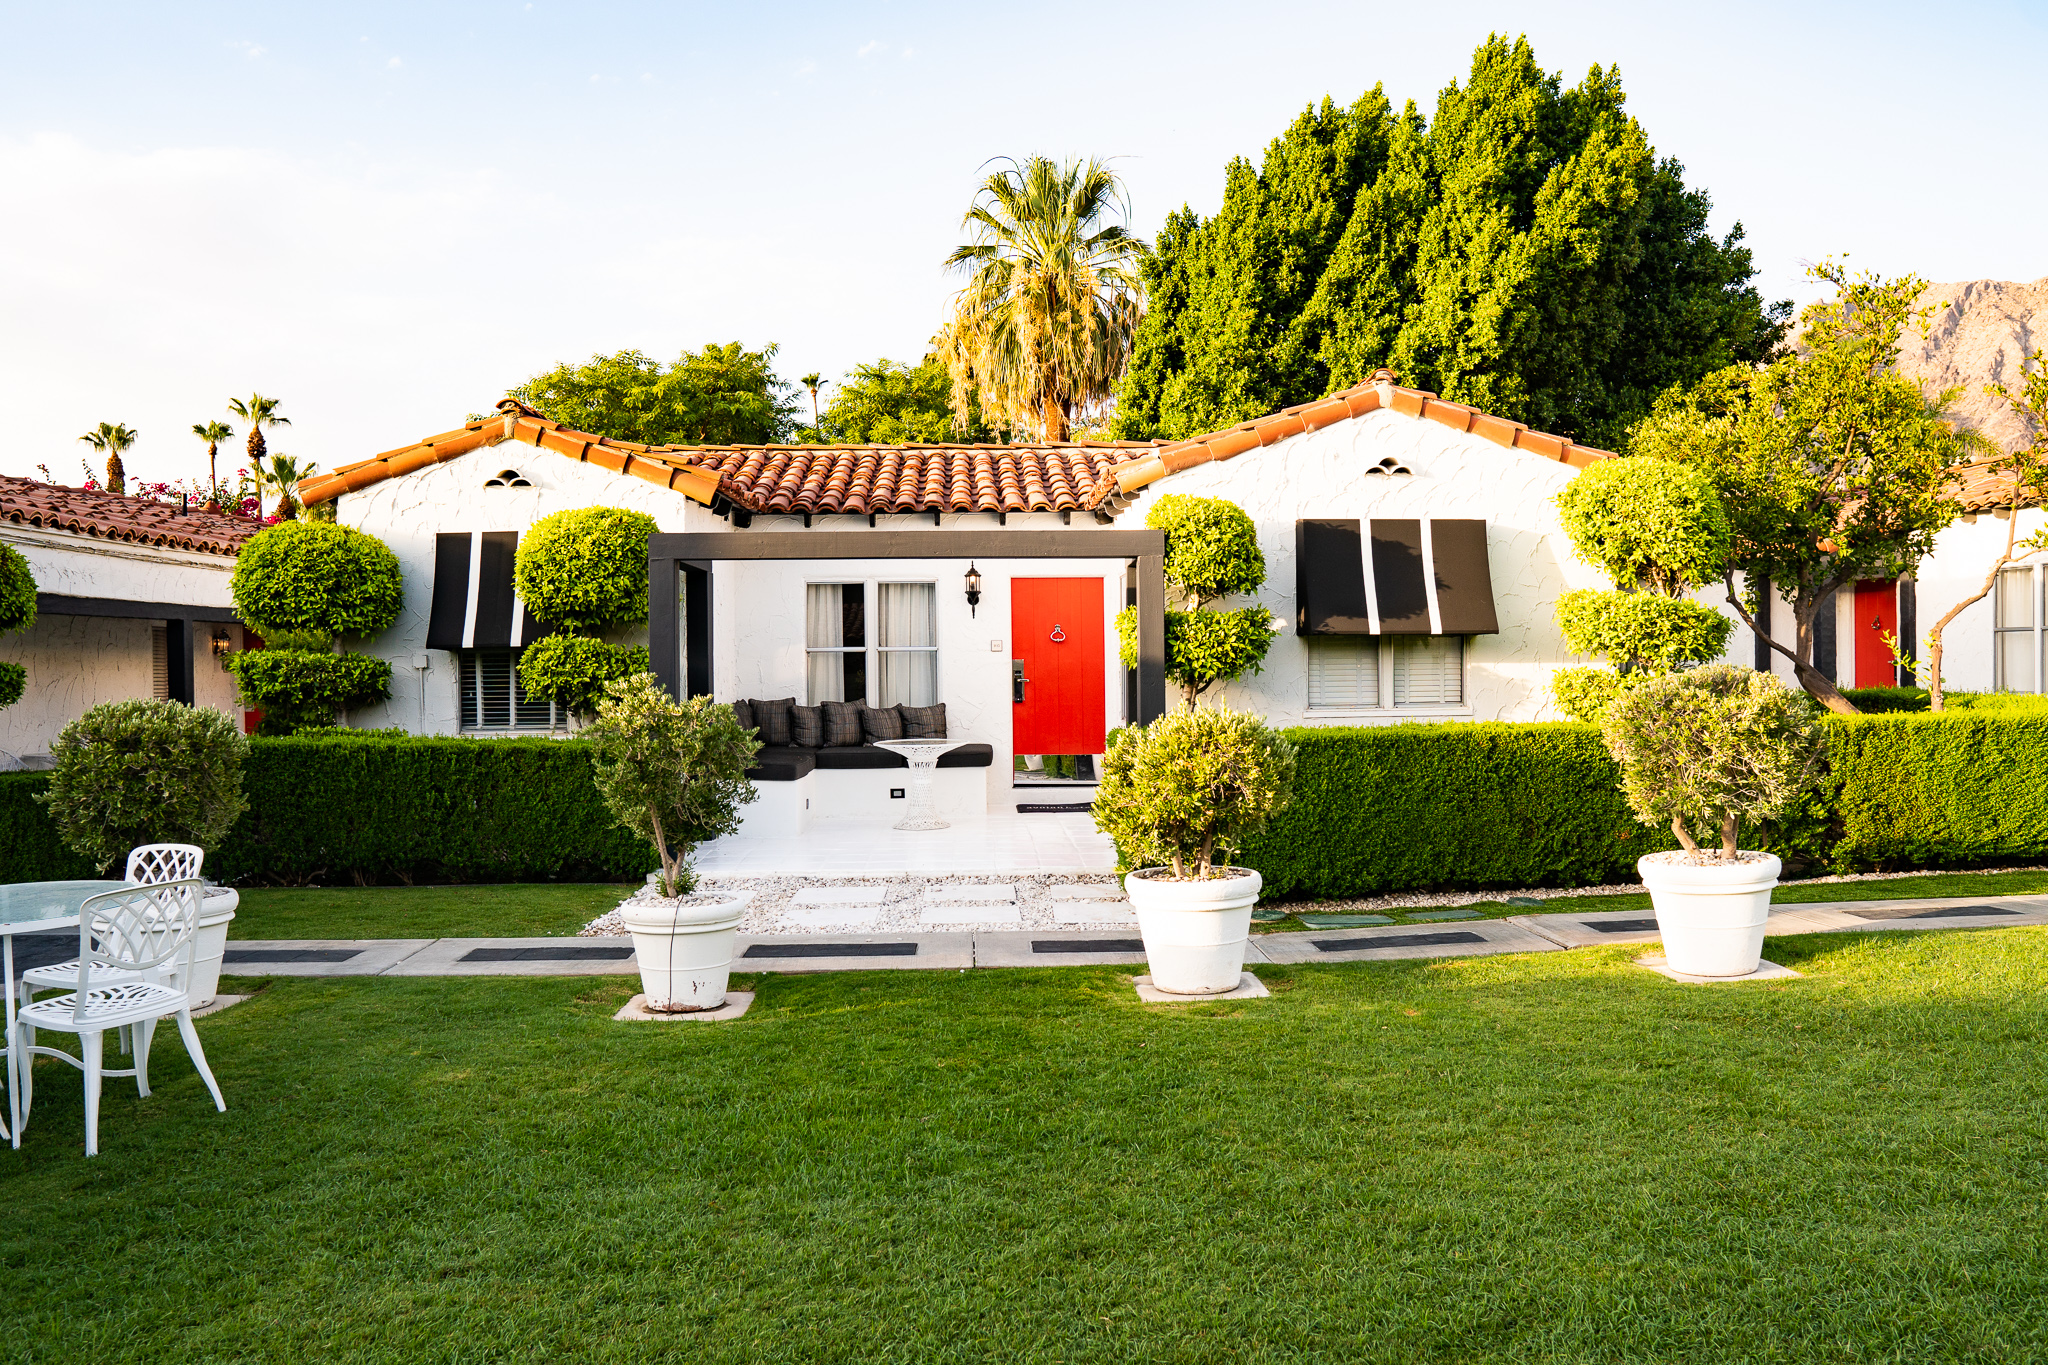 Bungalows at Avalon Hotel, Palm Springs